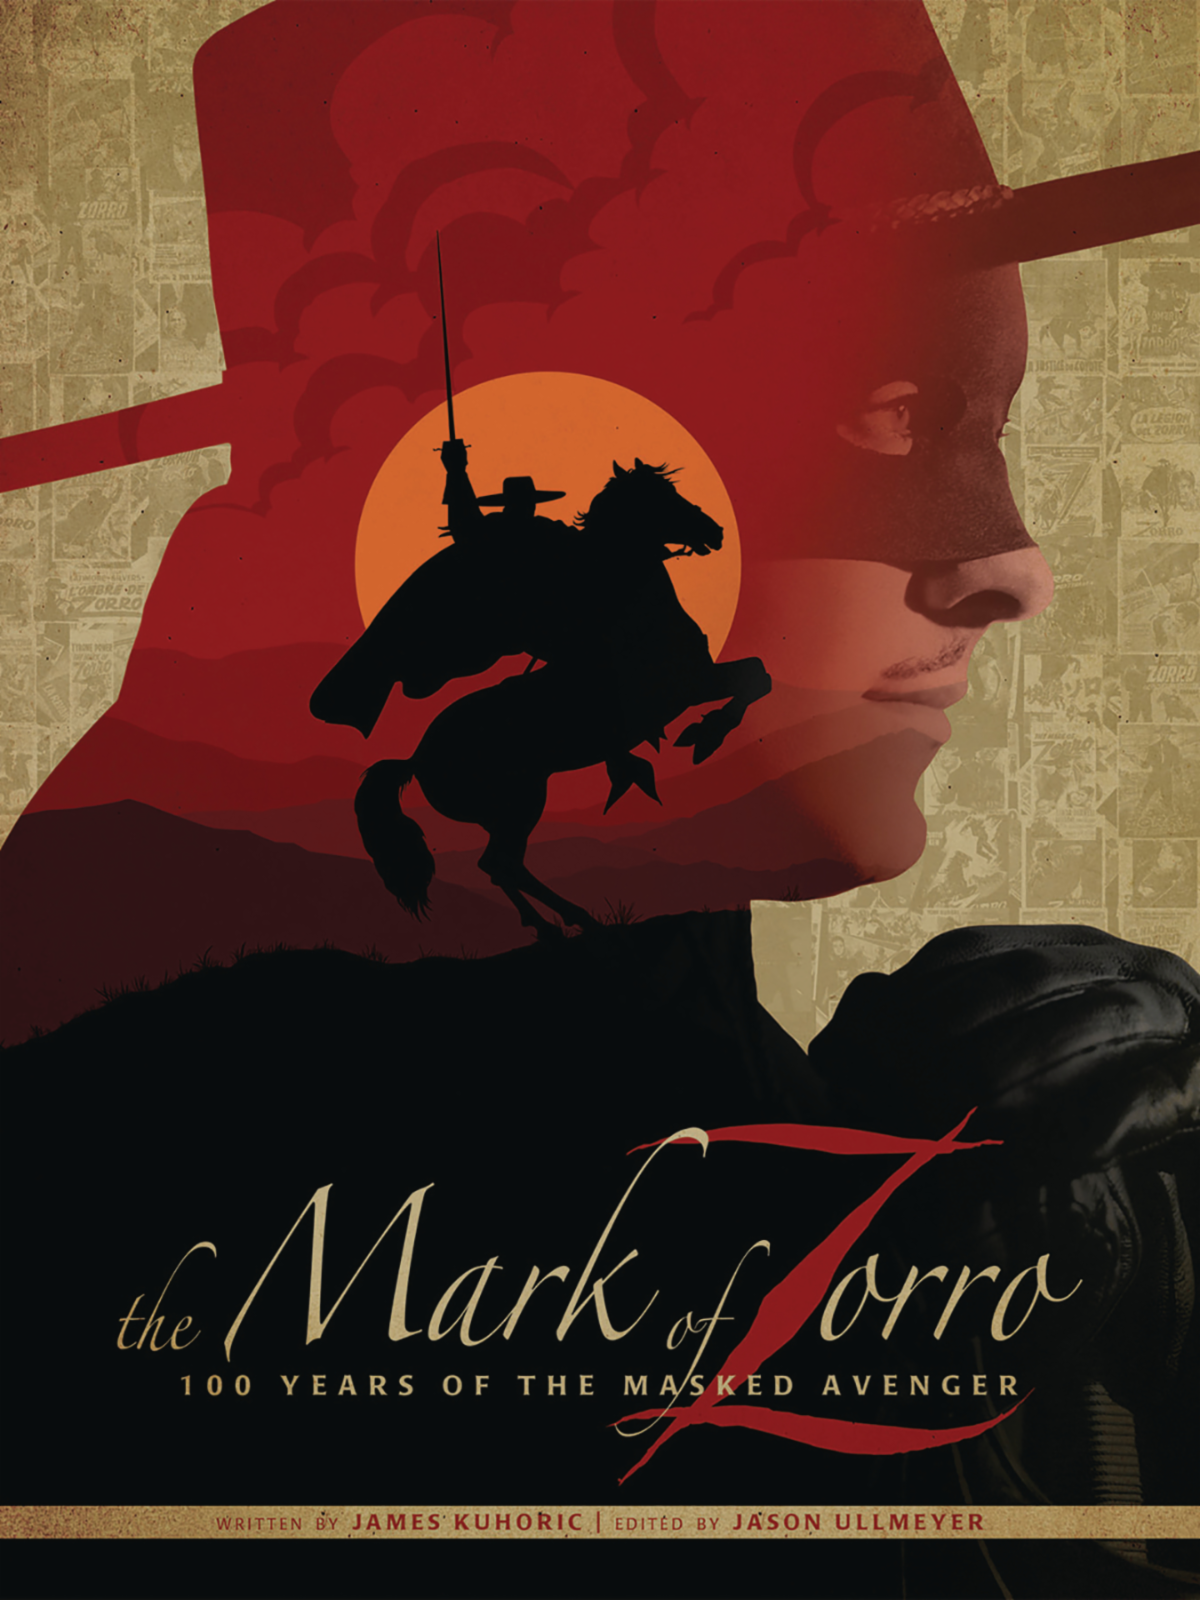 The Mark of Zorro - 100 Years of the Masked Avenger